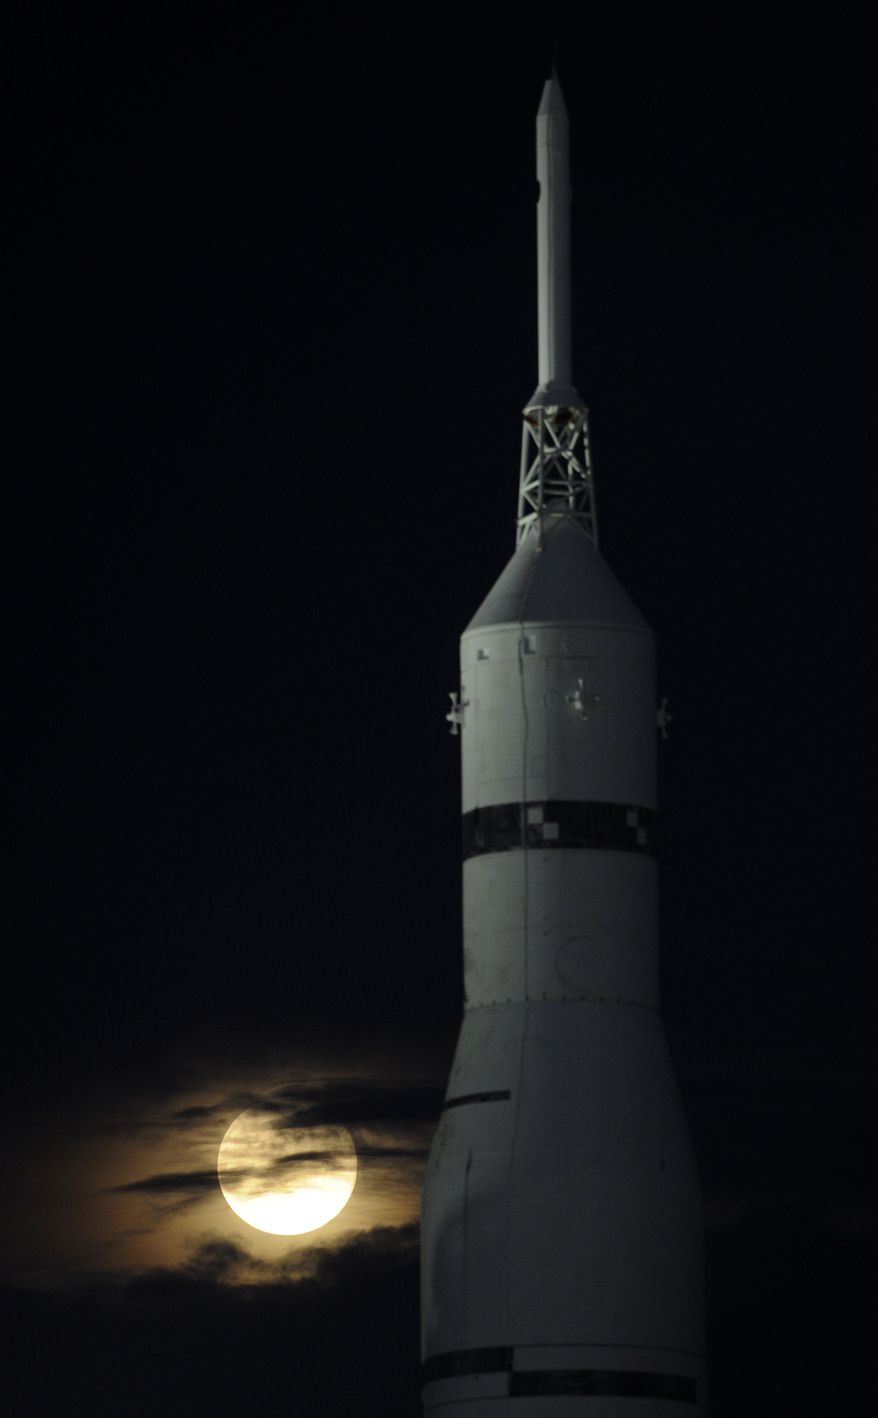 """The Moon rises next to a Saturn 1B rocket at the U.S. Space and Rocket Center Sunday, Aug. 10, 2014 in Huntsville, Ala.  The 224-foot-tall Saturn 1B was a forerunner of the Saturn V launch vehicle for NASA missions to the moon. The phenomenon, which scientists call a """"perigee moon,"""" occurs when the moon is near the horizon and appears larger and brighter than other full moons. (AP Photo/Eric Schultz, AL.com)"""